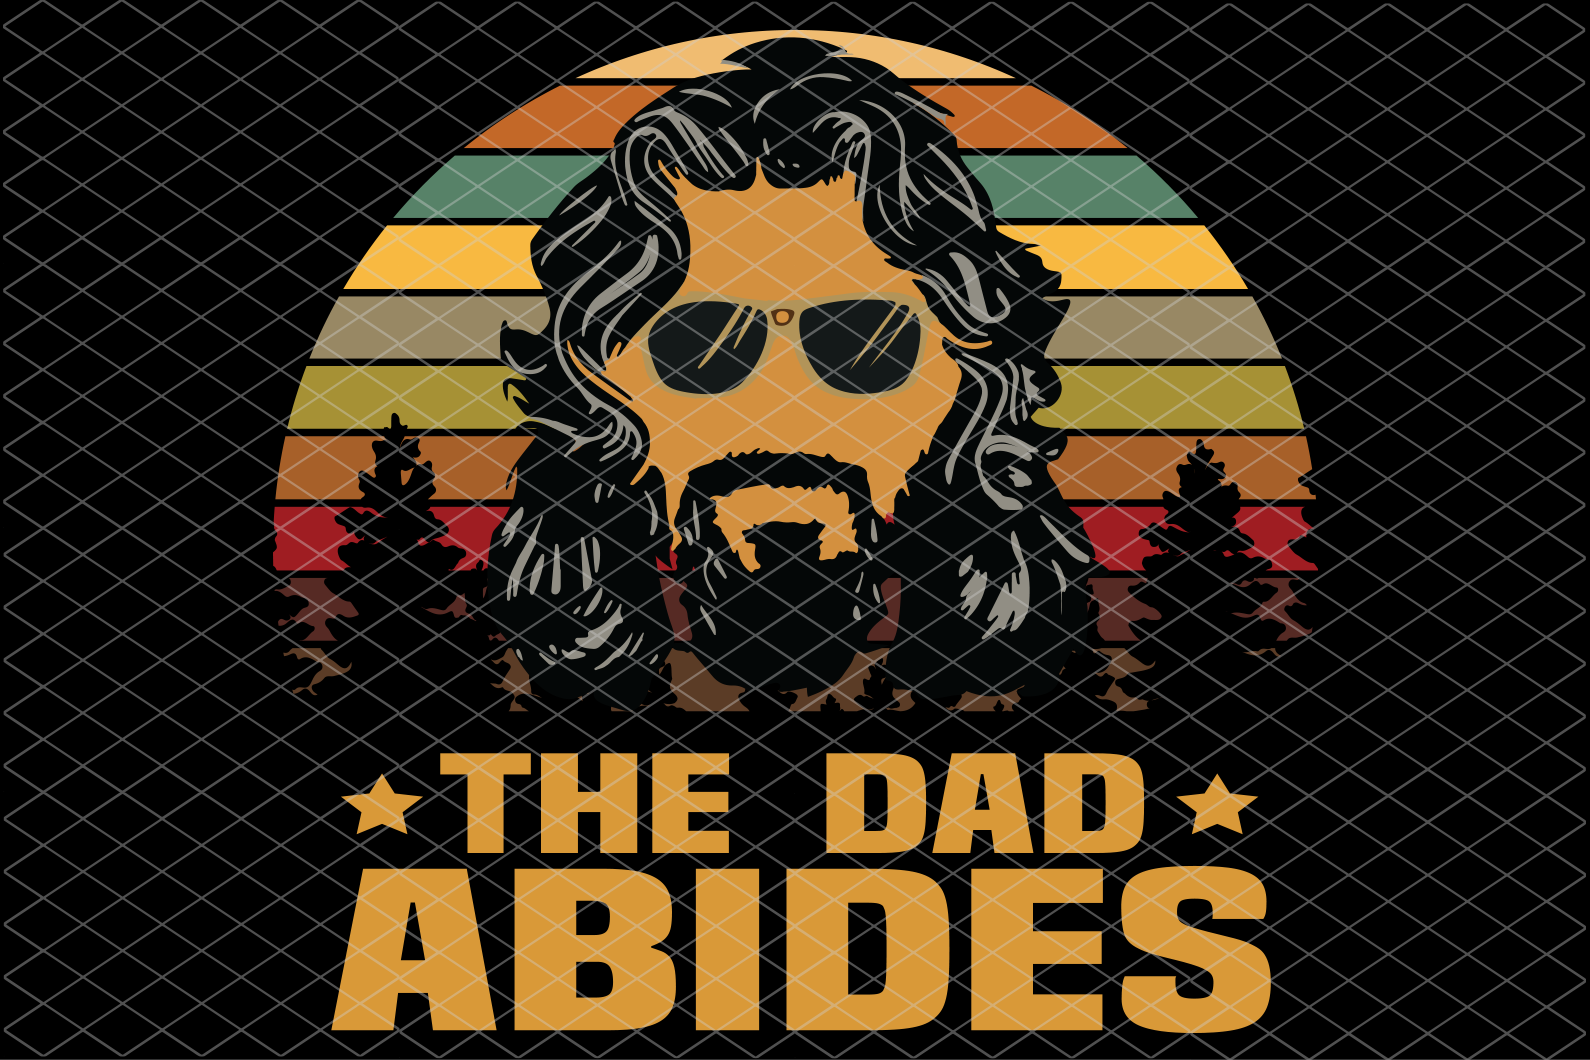 The dad abides,  fathers day svg, fathers day gift, gift for papa, fathers day lover, fathers day lover gift,family svg , family shirt,family gift,trending svg, Files For Silhouette, Files For Cricut, SVG, DXF, EPS, PNG, Instant Download